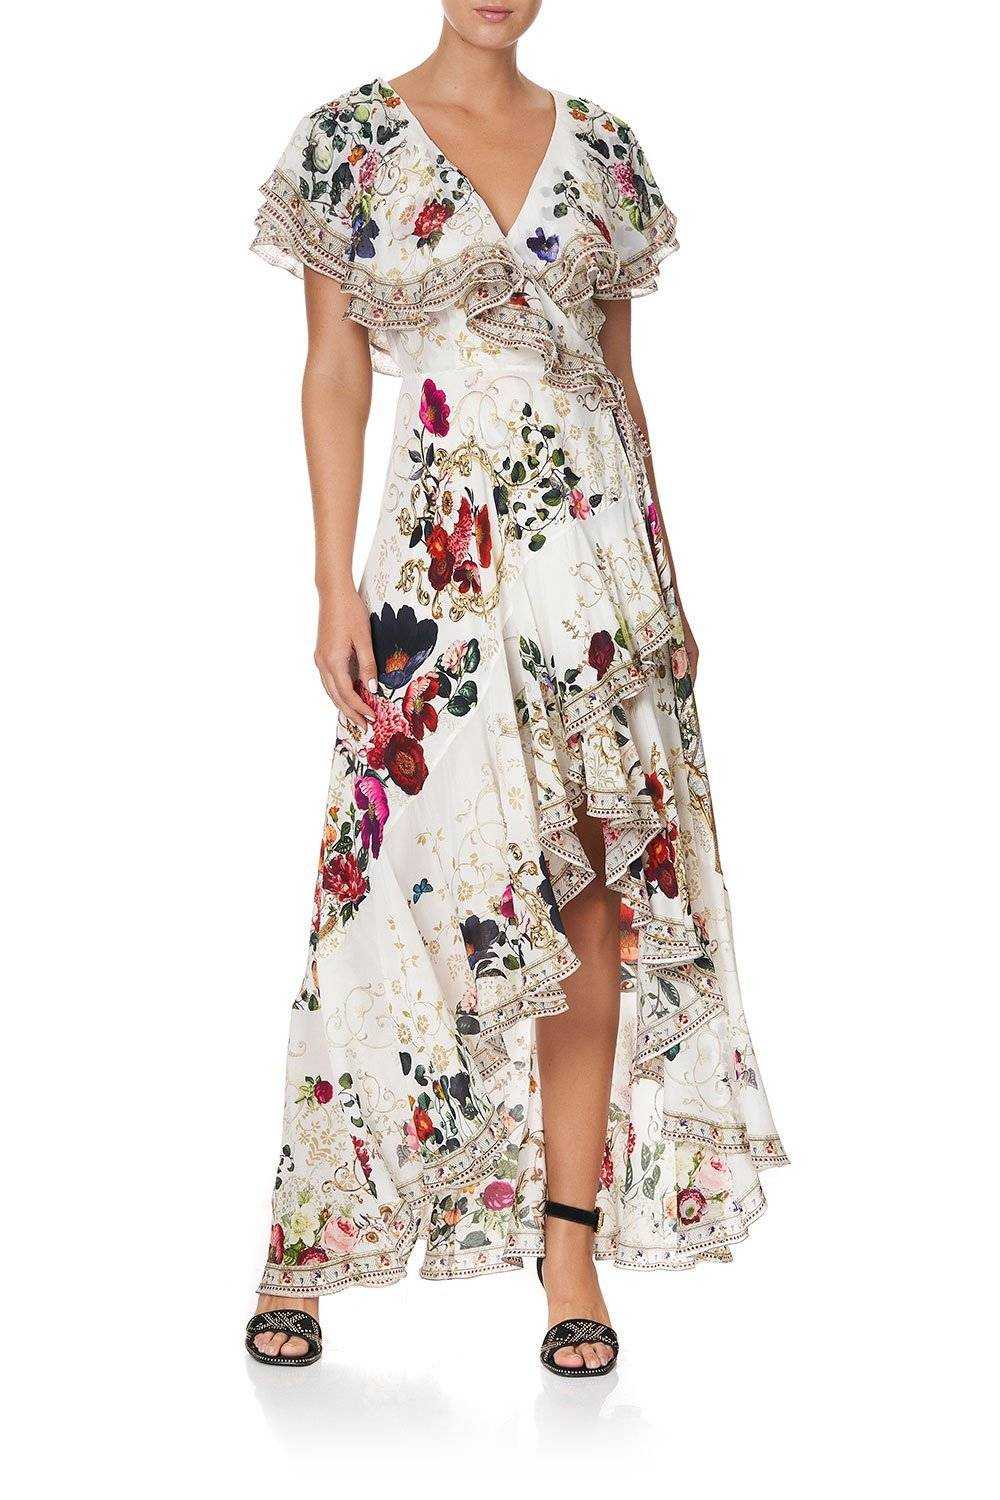 CAMILLA white and pink floral frill dress